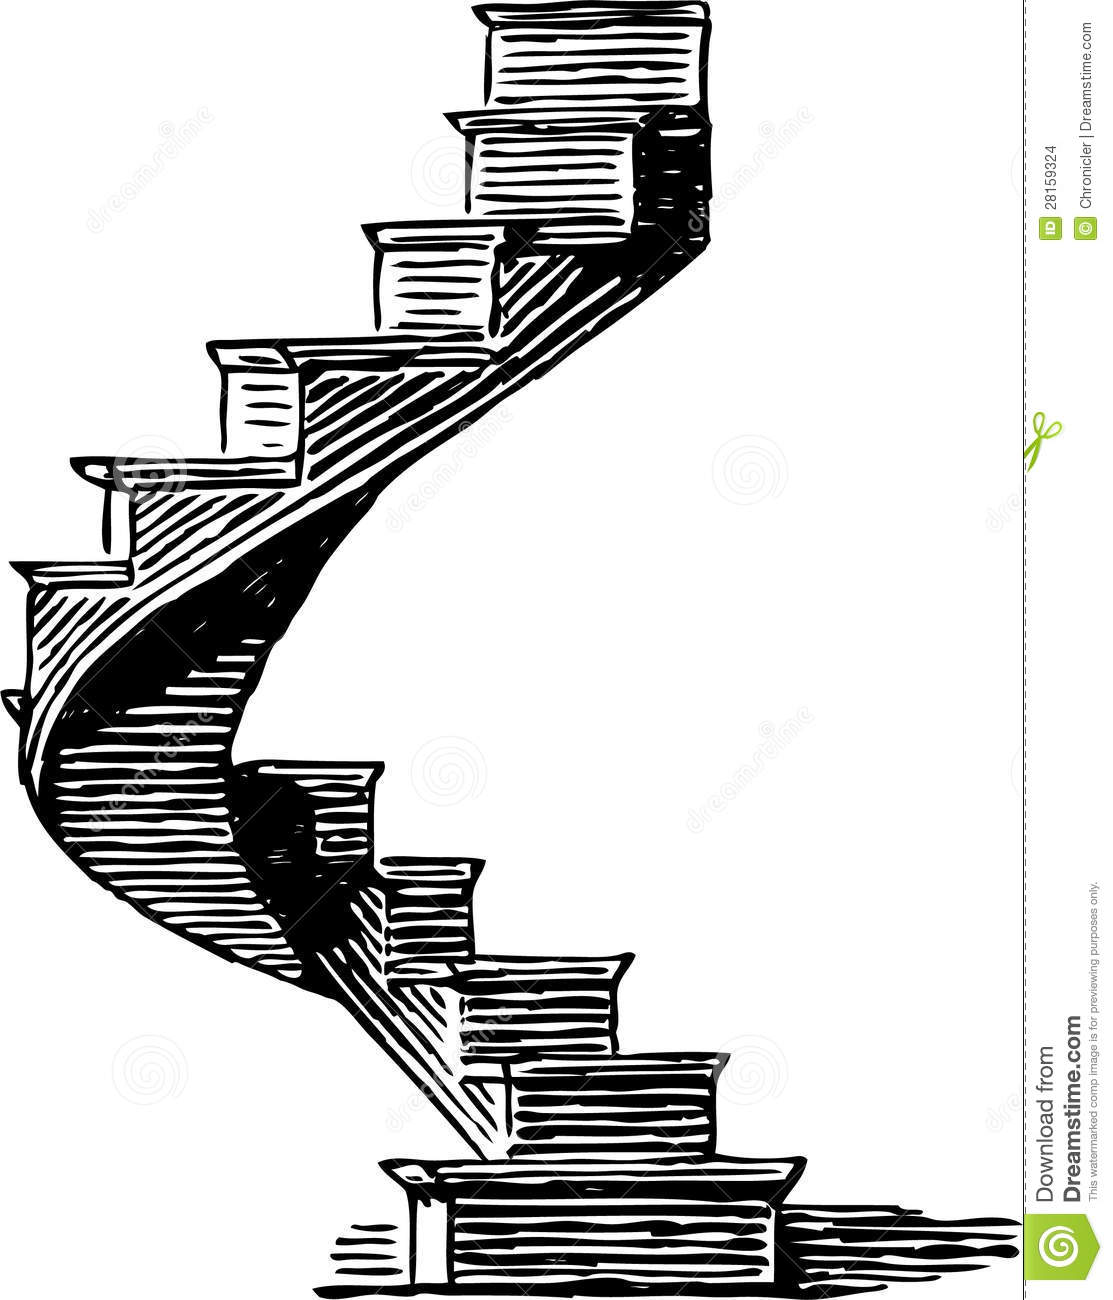 Free clipart outlines for steps only jpg free download Stair Clipart | Free download best Stair Clipart on ClipArtMag.com jpg free download